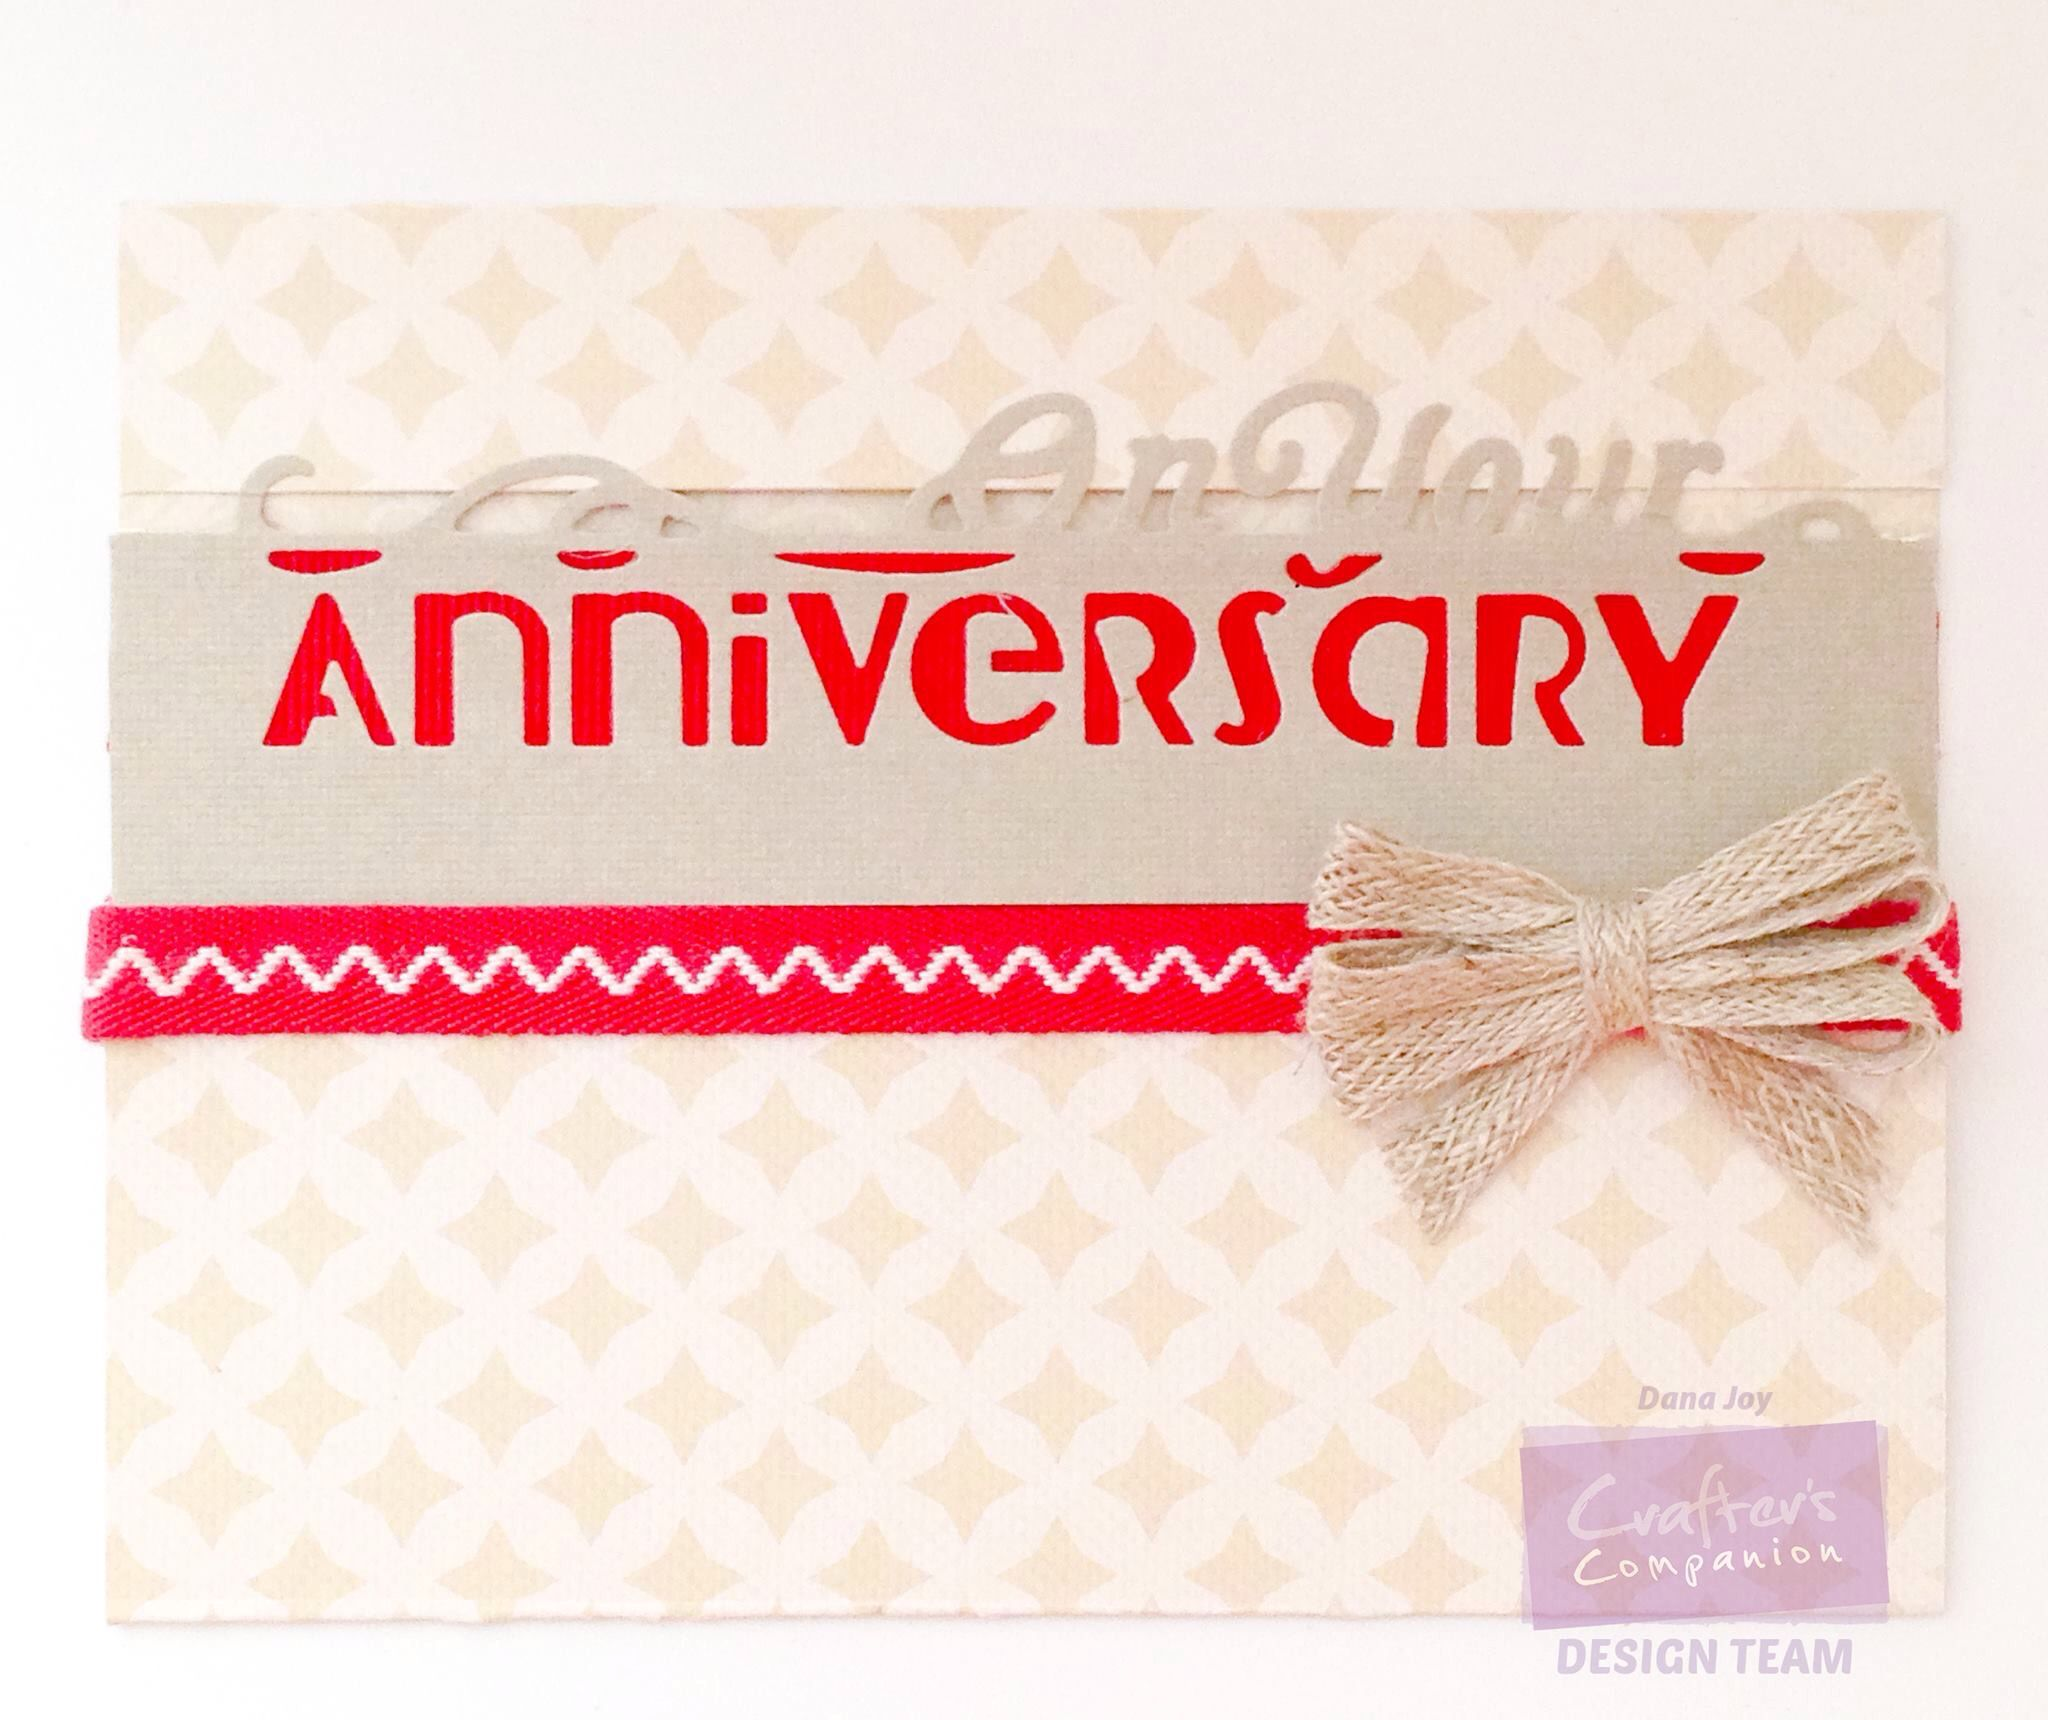 Dana Joy Crafterscompus Crafter S Companion On Your Anniversary Edge Able Die And 11x17 Elegance Double Sided Paper Crafters Companion Cards Card Making